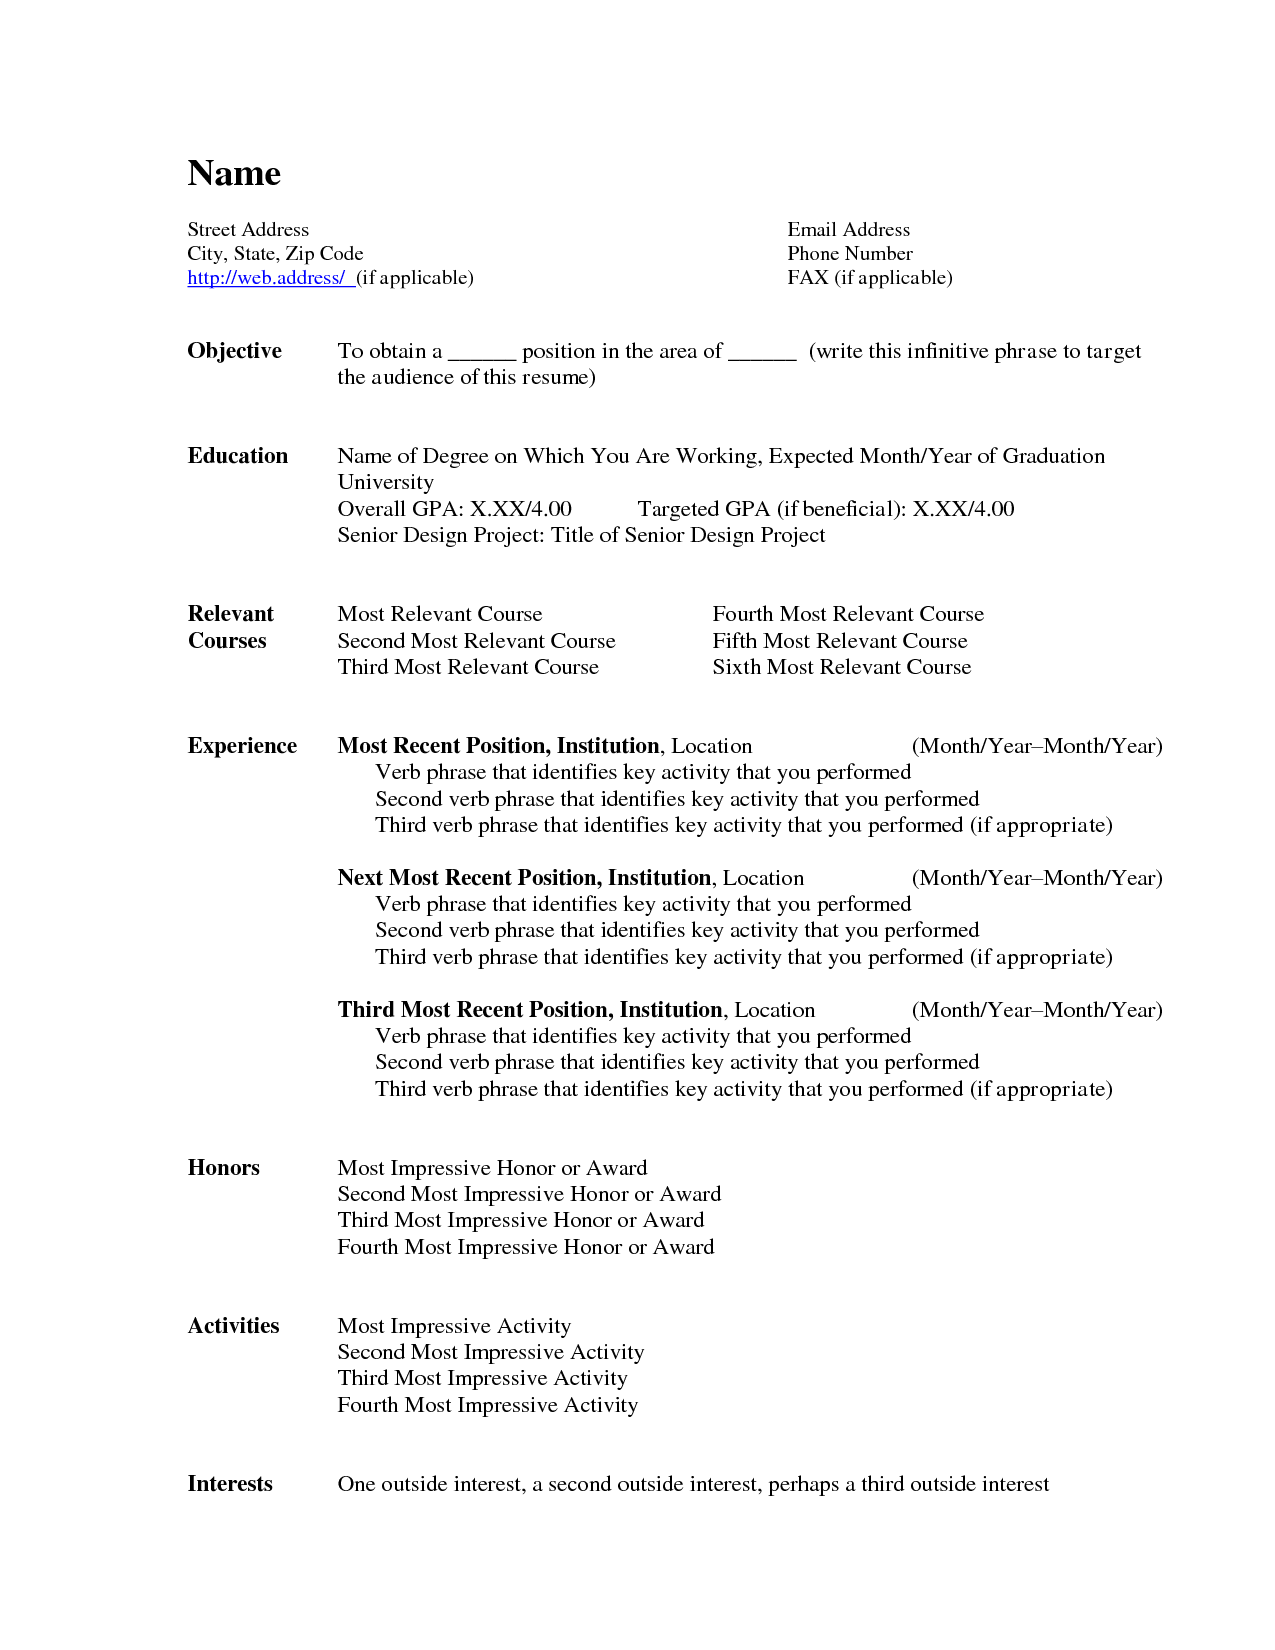 microsoft word resume template resume builder resume resume     jobresume website